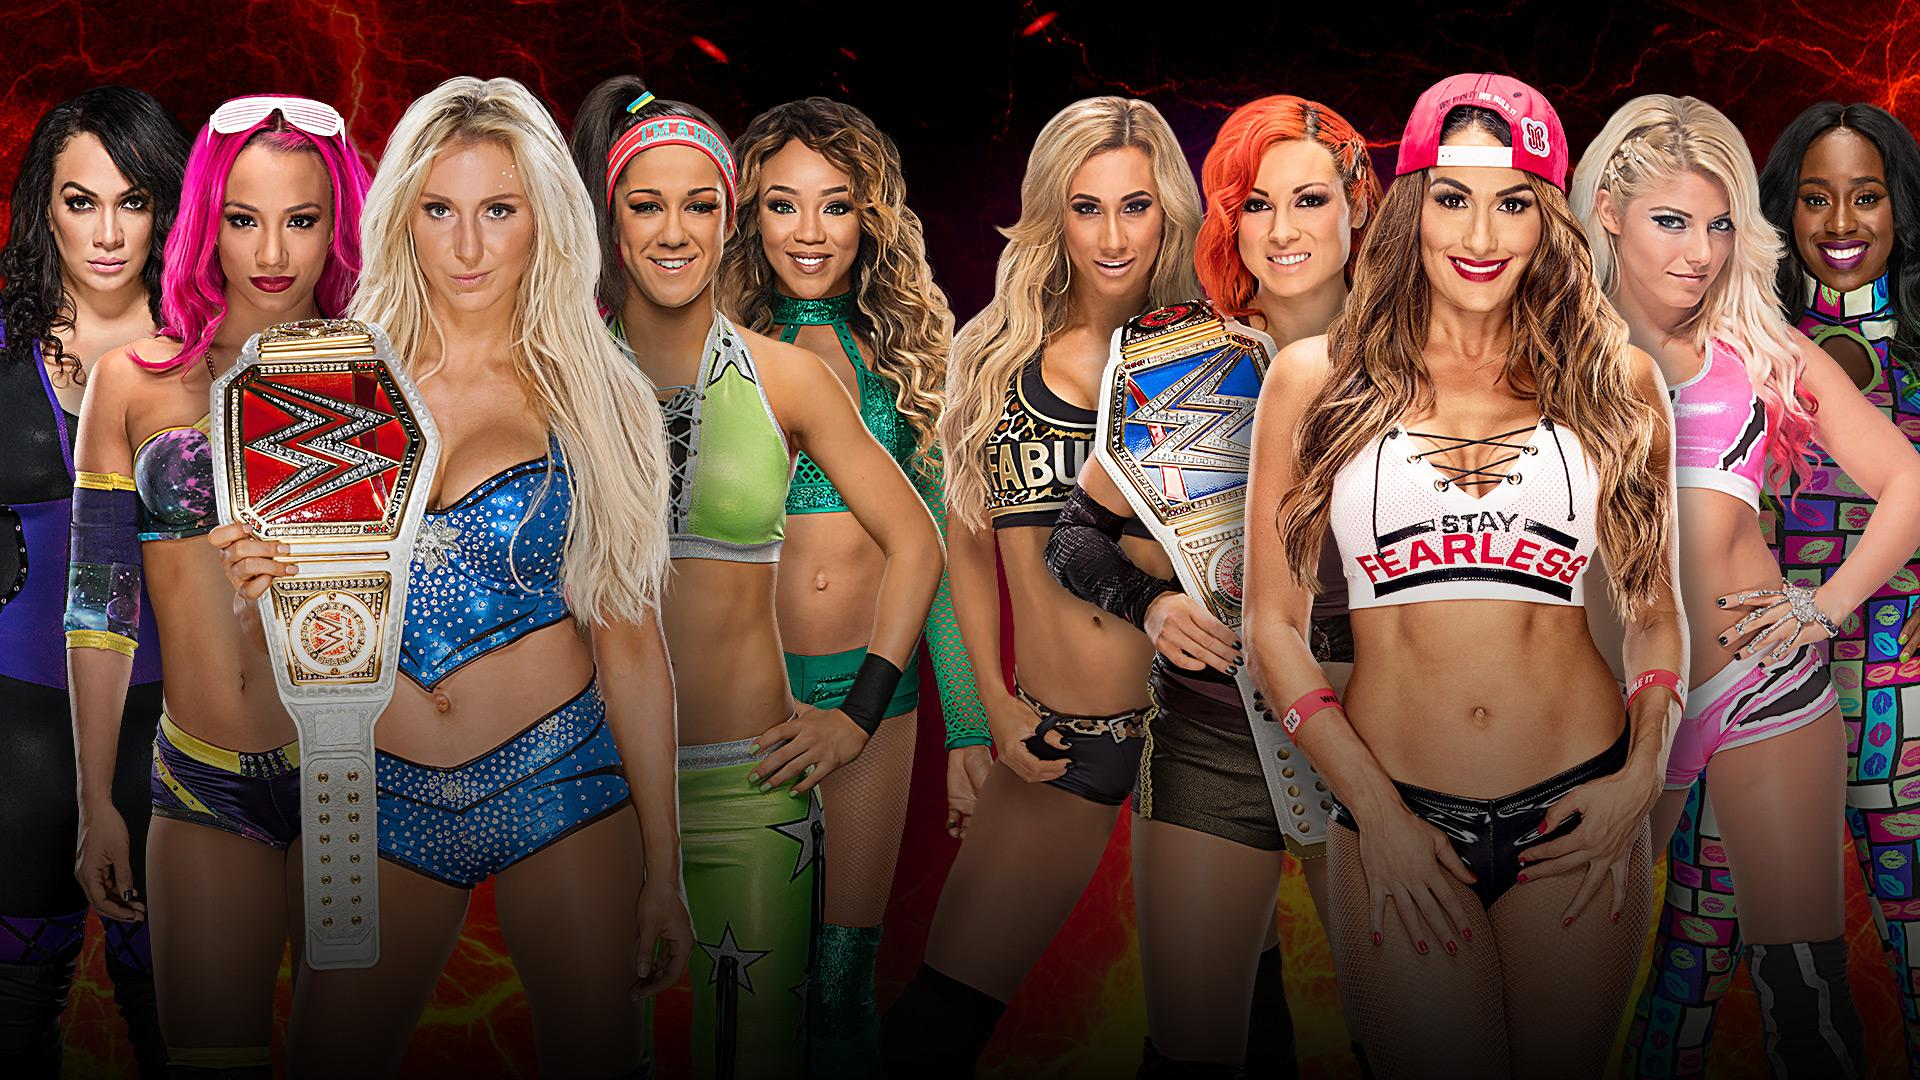 Team Raw vs Team SmackDown Women's Elimination Match